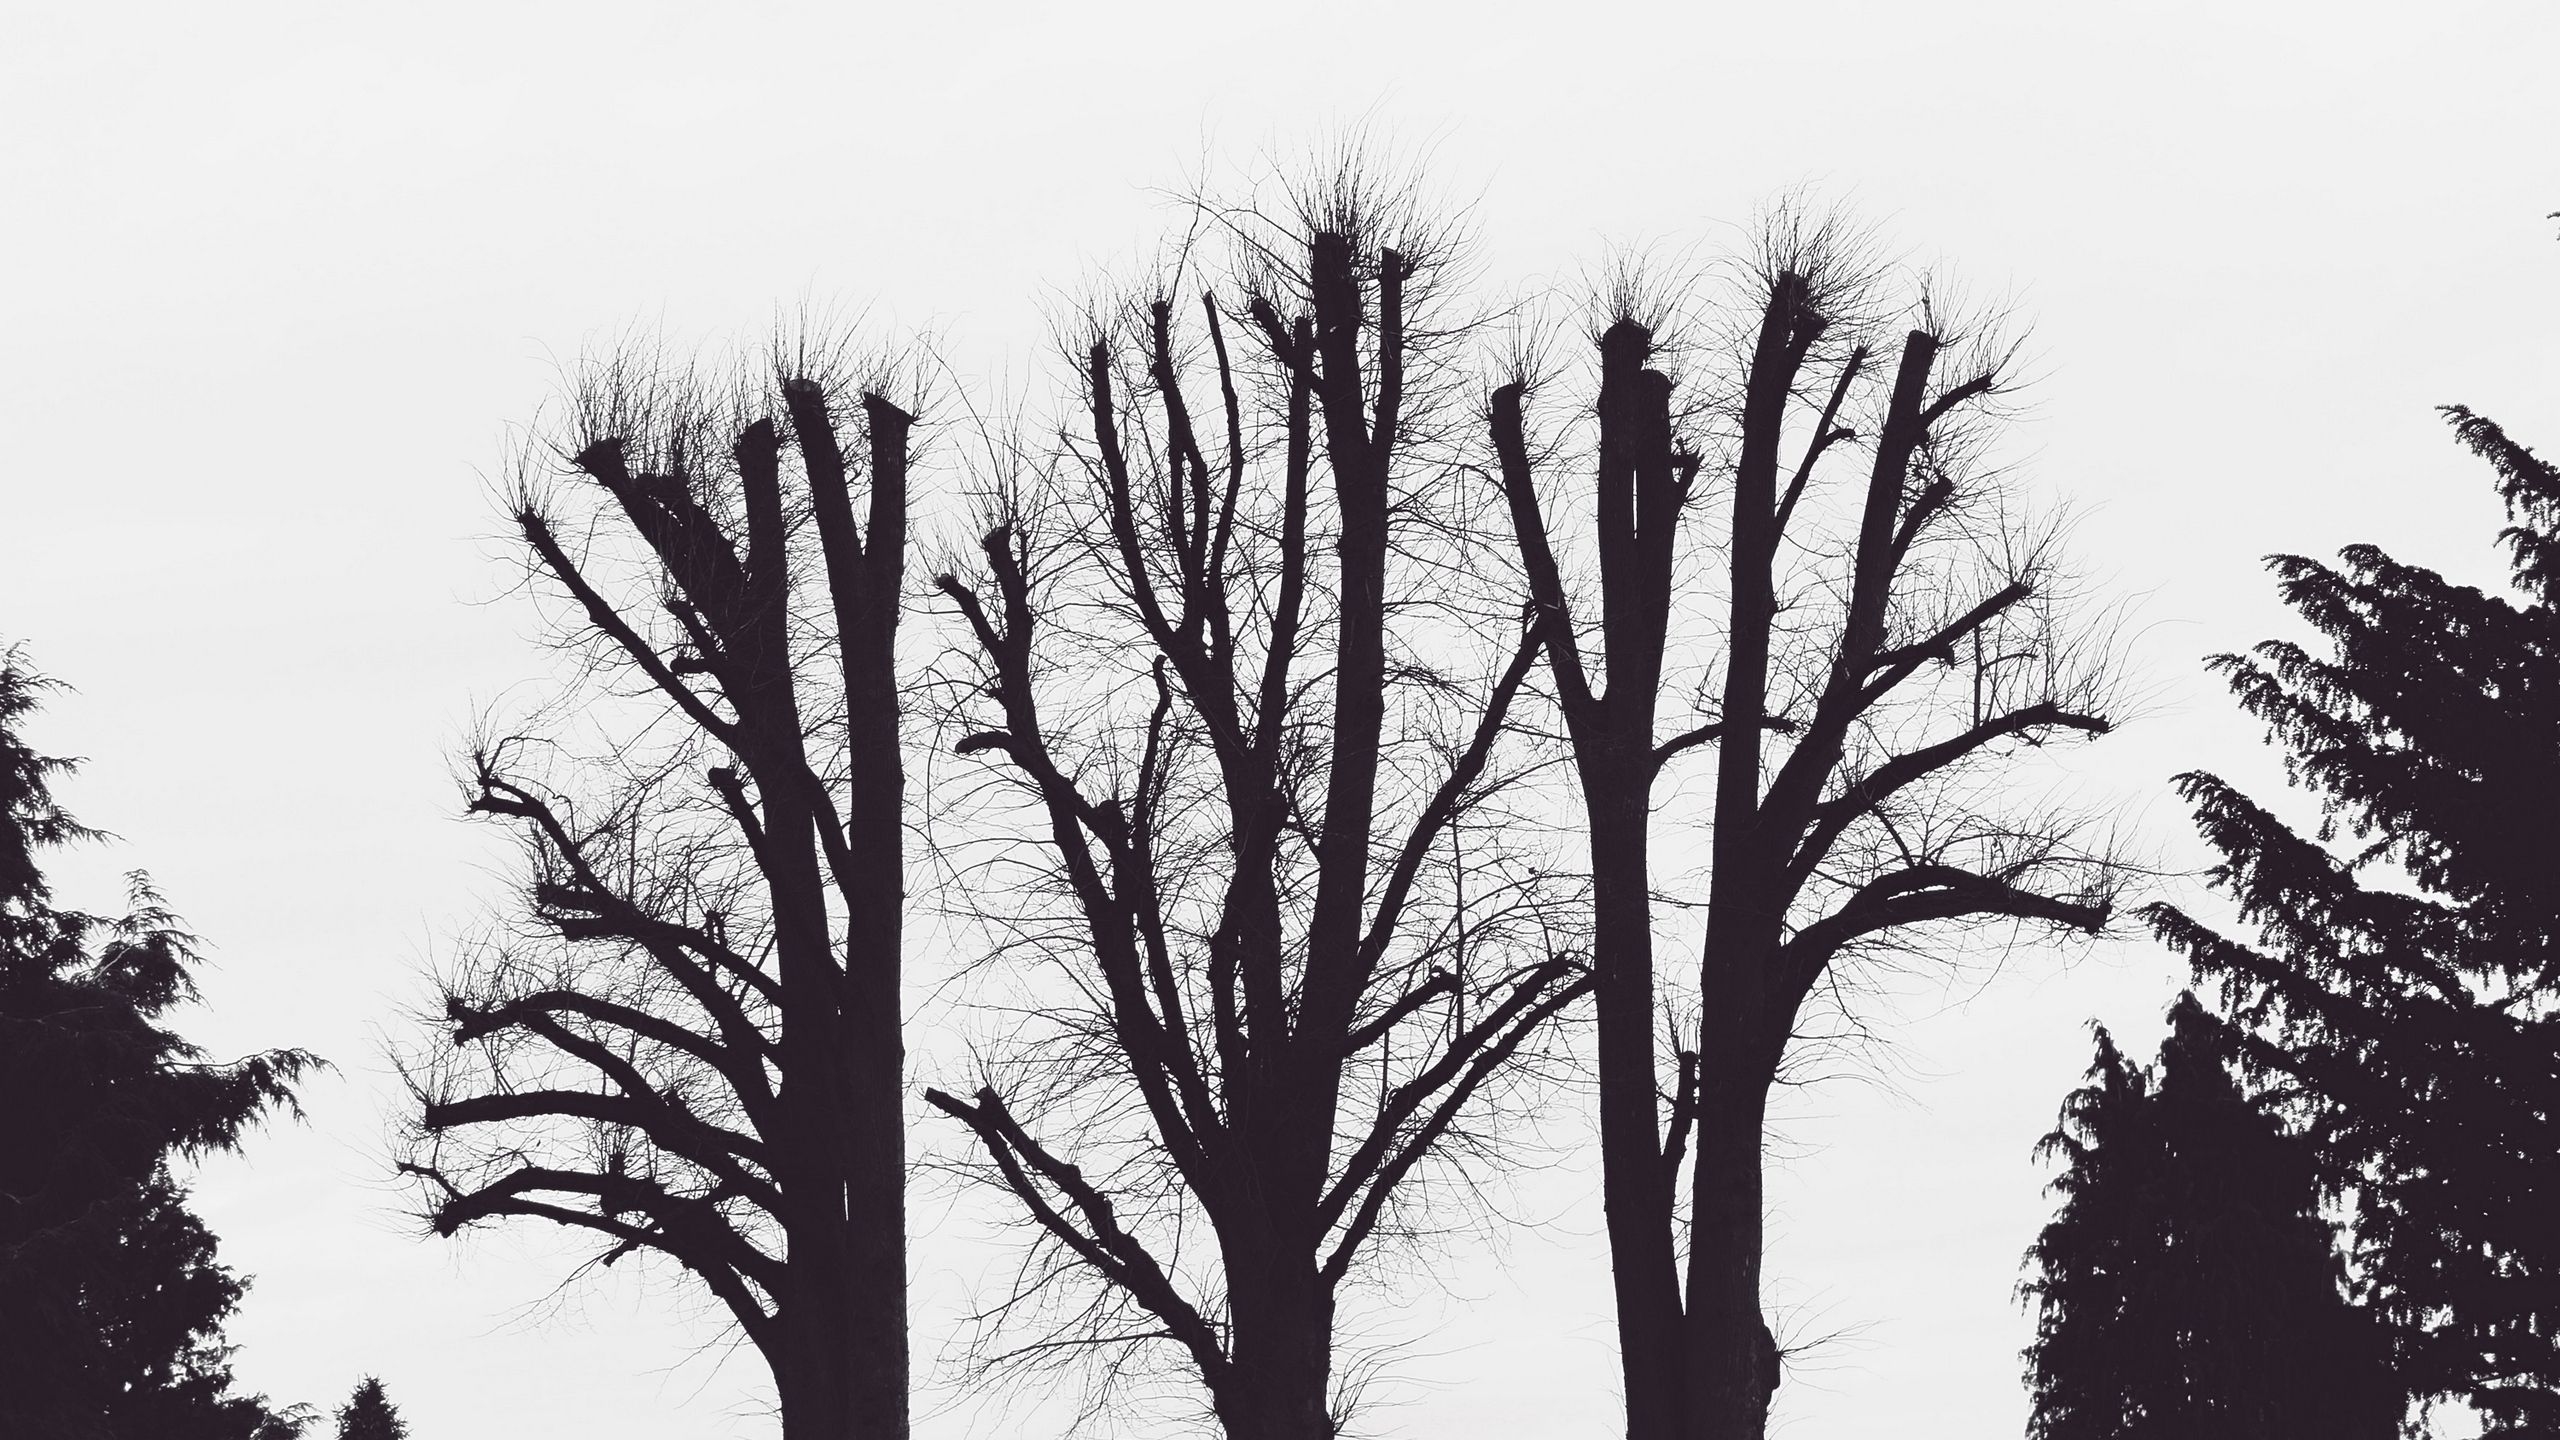 2560x1440 Download wallpaper 2560x1440 trees, branches, aesthetic, bw ...